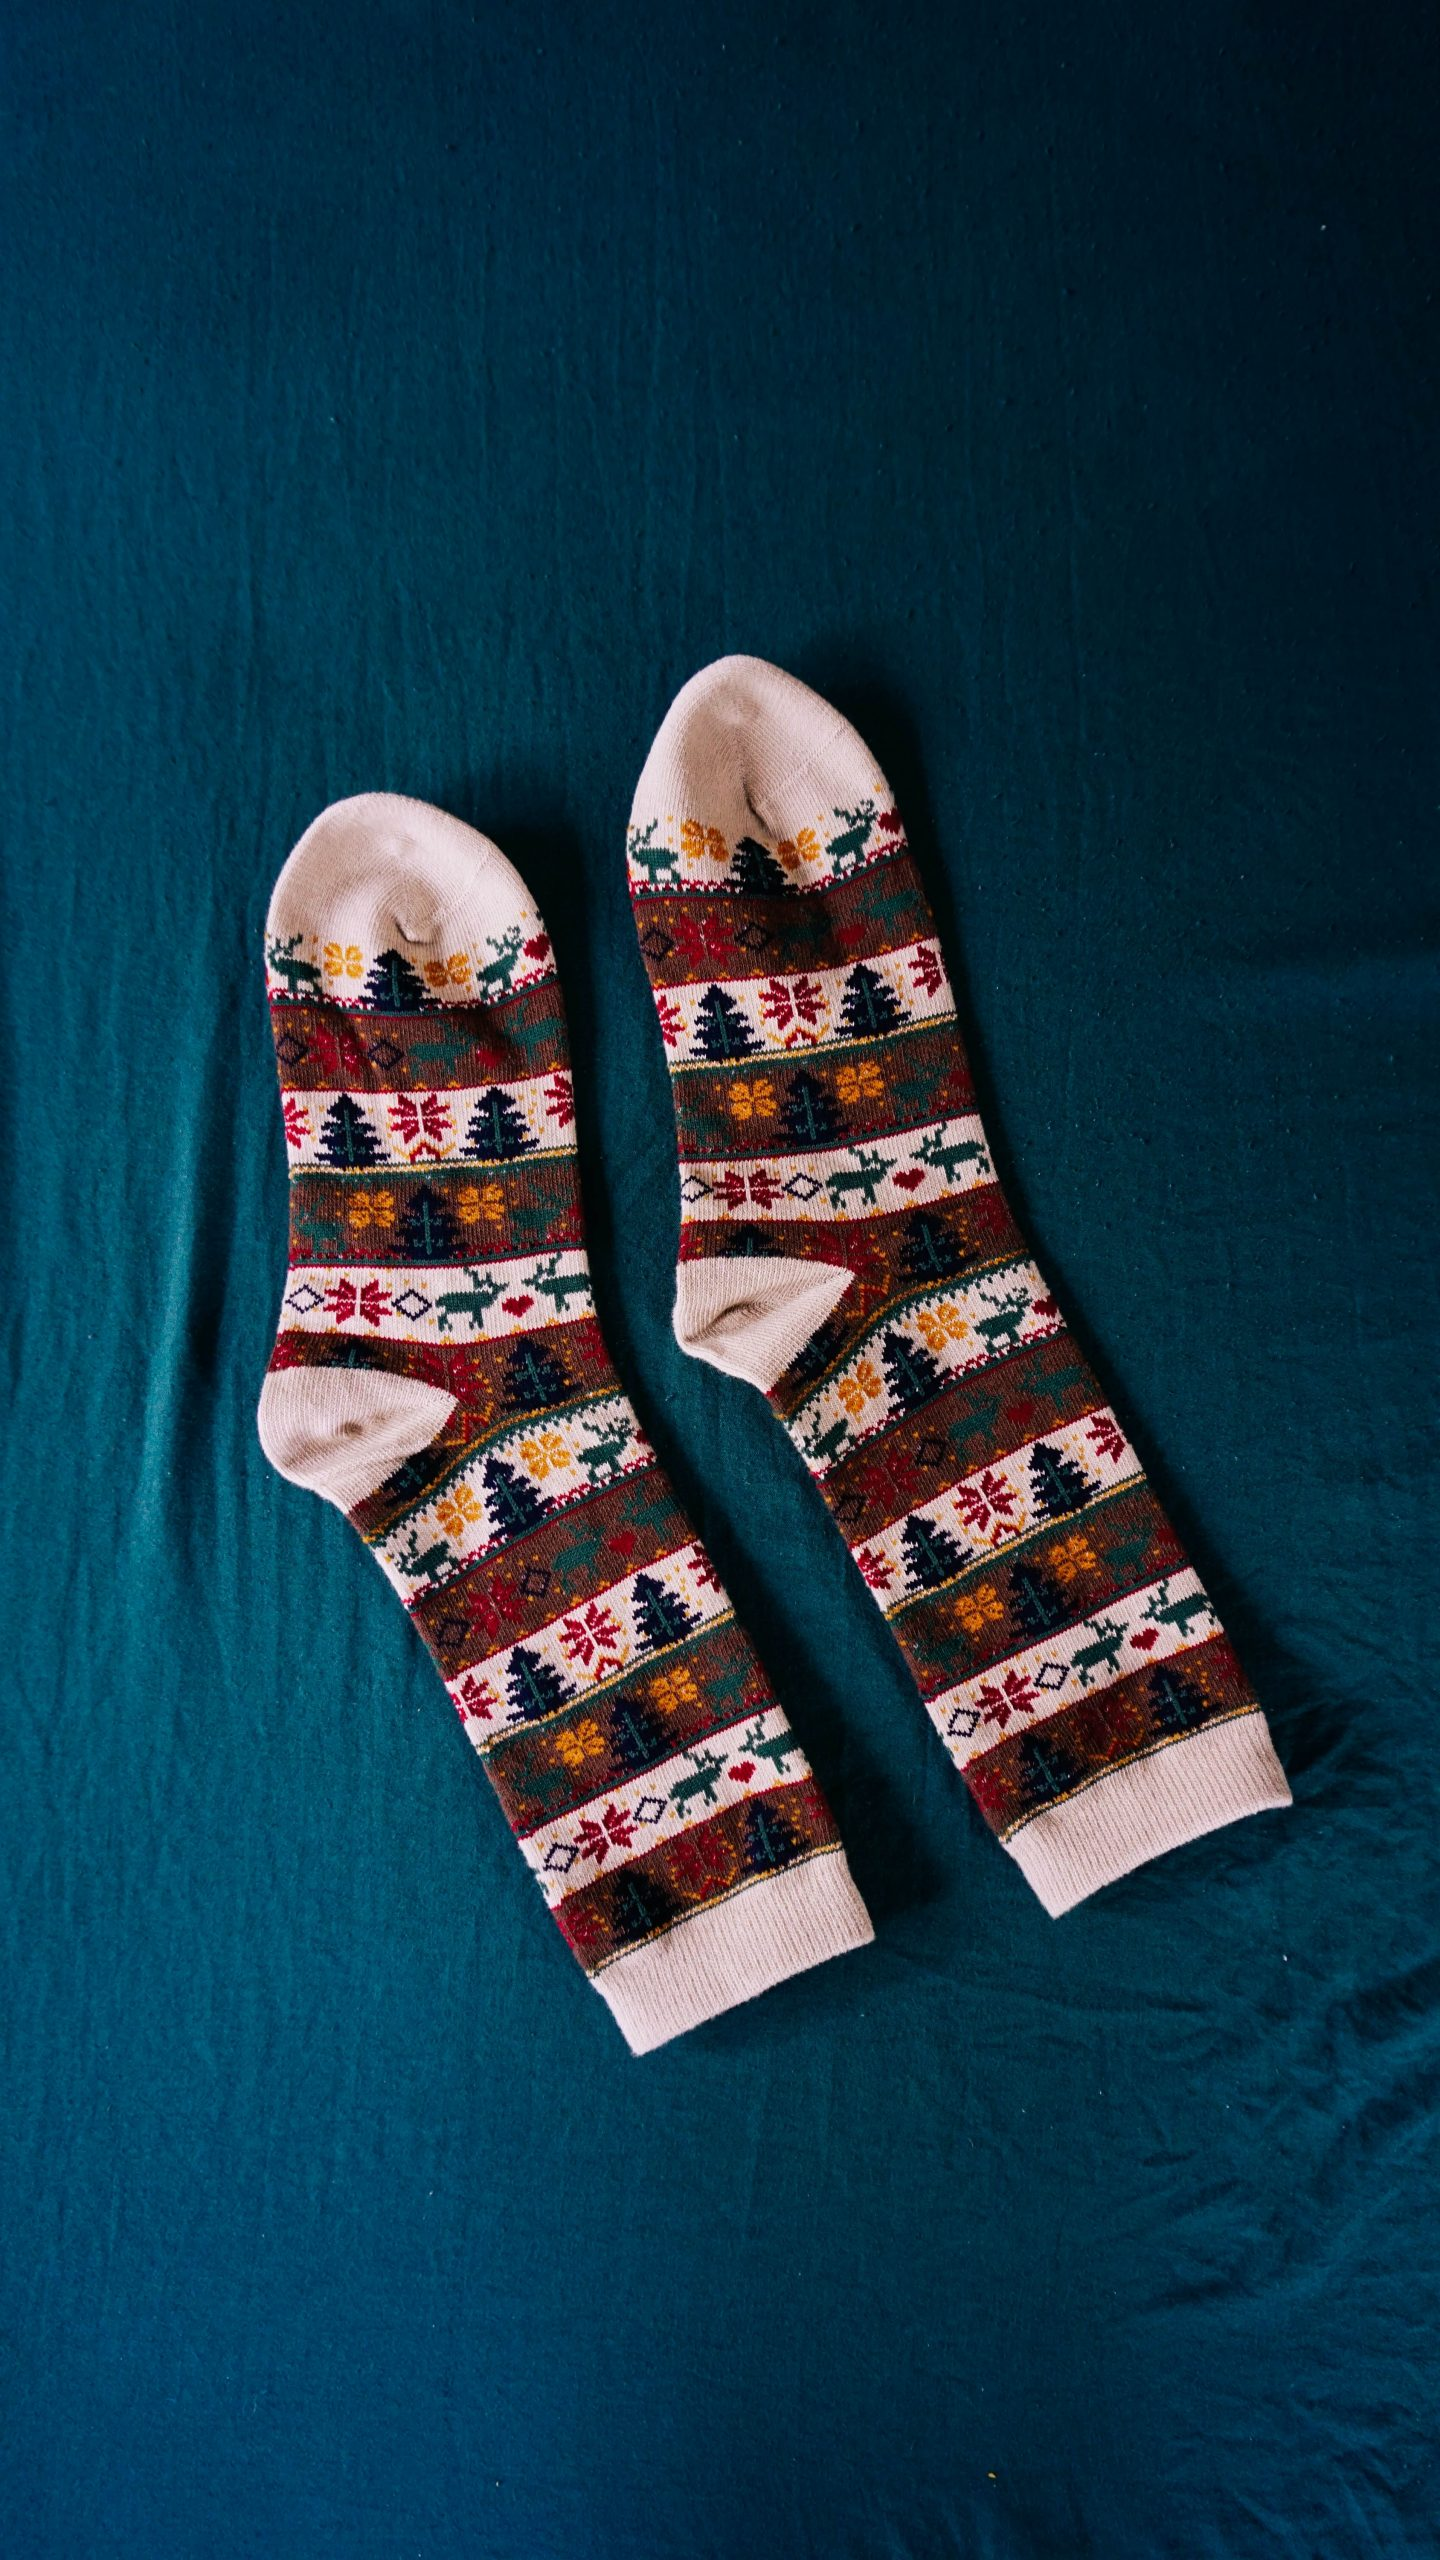 A pair of Christmas socks with imprinted Christmas trees and reindeer.